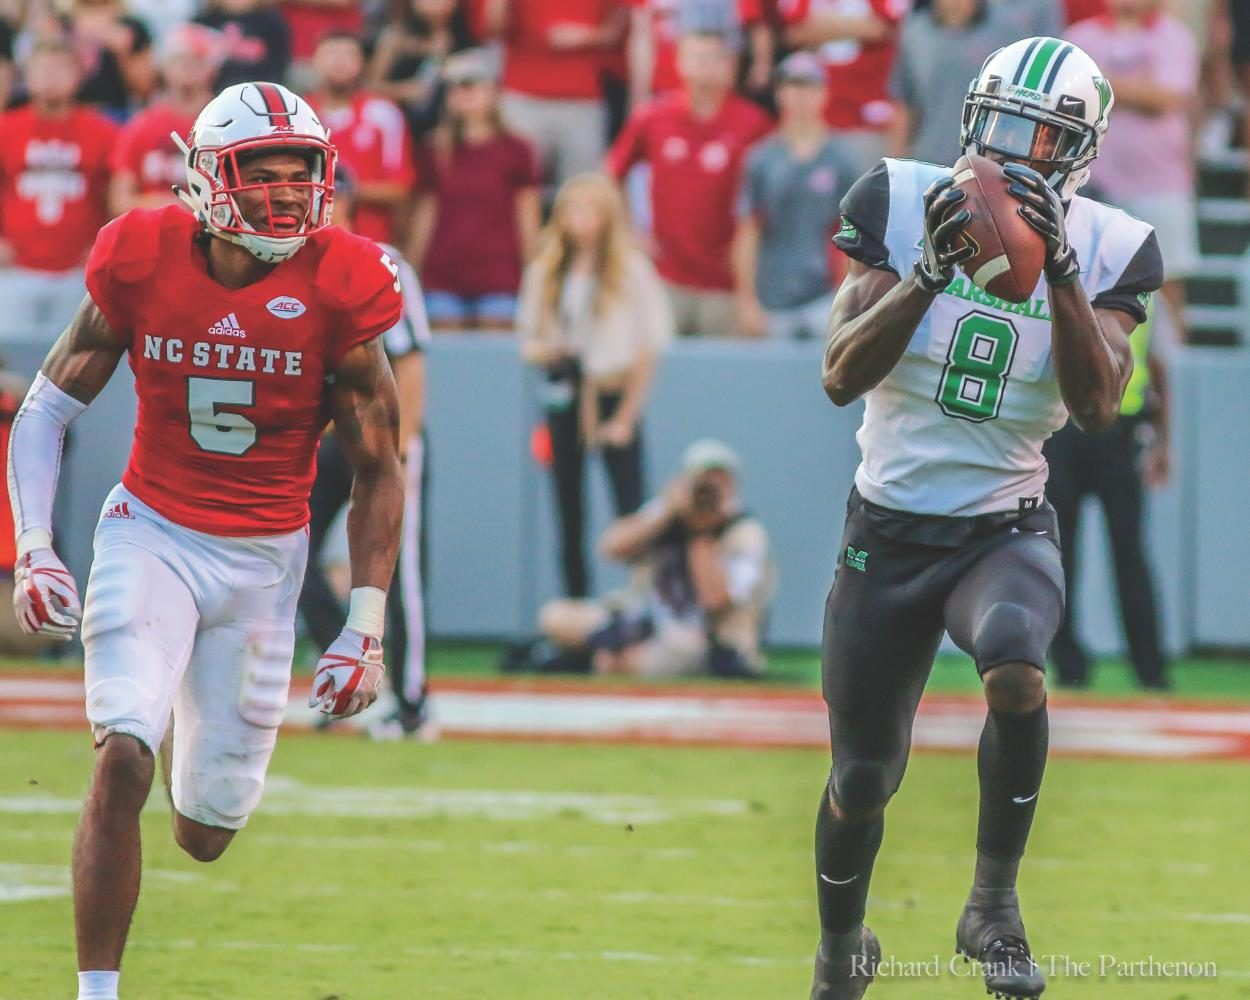 Marshall+redshirt+junior+wide+receiver+Tyre+Brady+%28right%29+breaks+away+from+NC+State+cornerback+Johnathan+Alston+during+the+Thundering+Herd%E2%80%99s+37-20+loss+to+the+Wolfpack+in+Raleigh%2C+N.C.+at+Carter-Finley+Stadium.